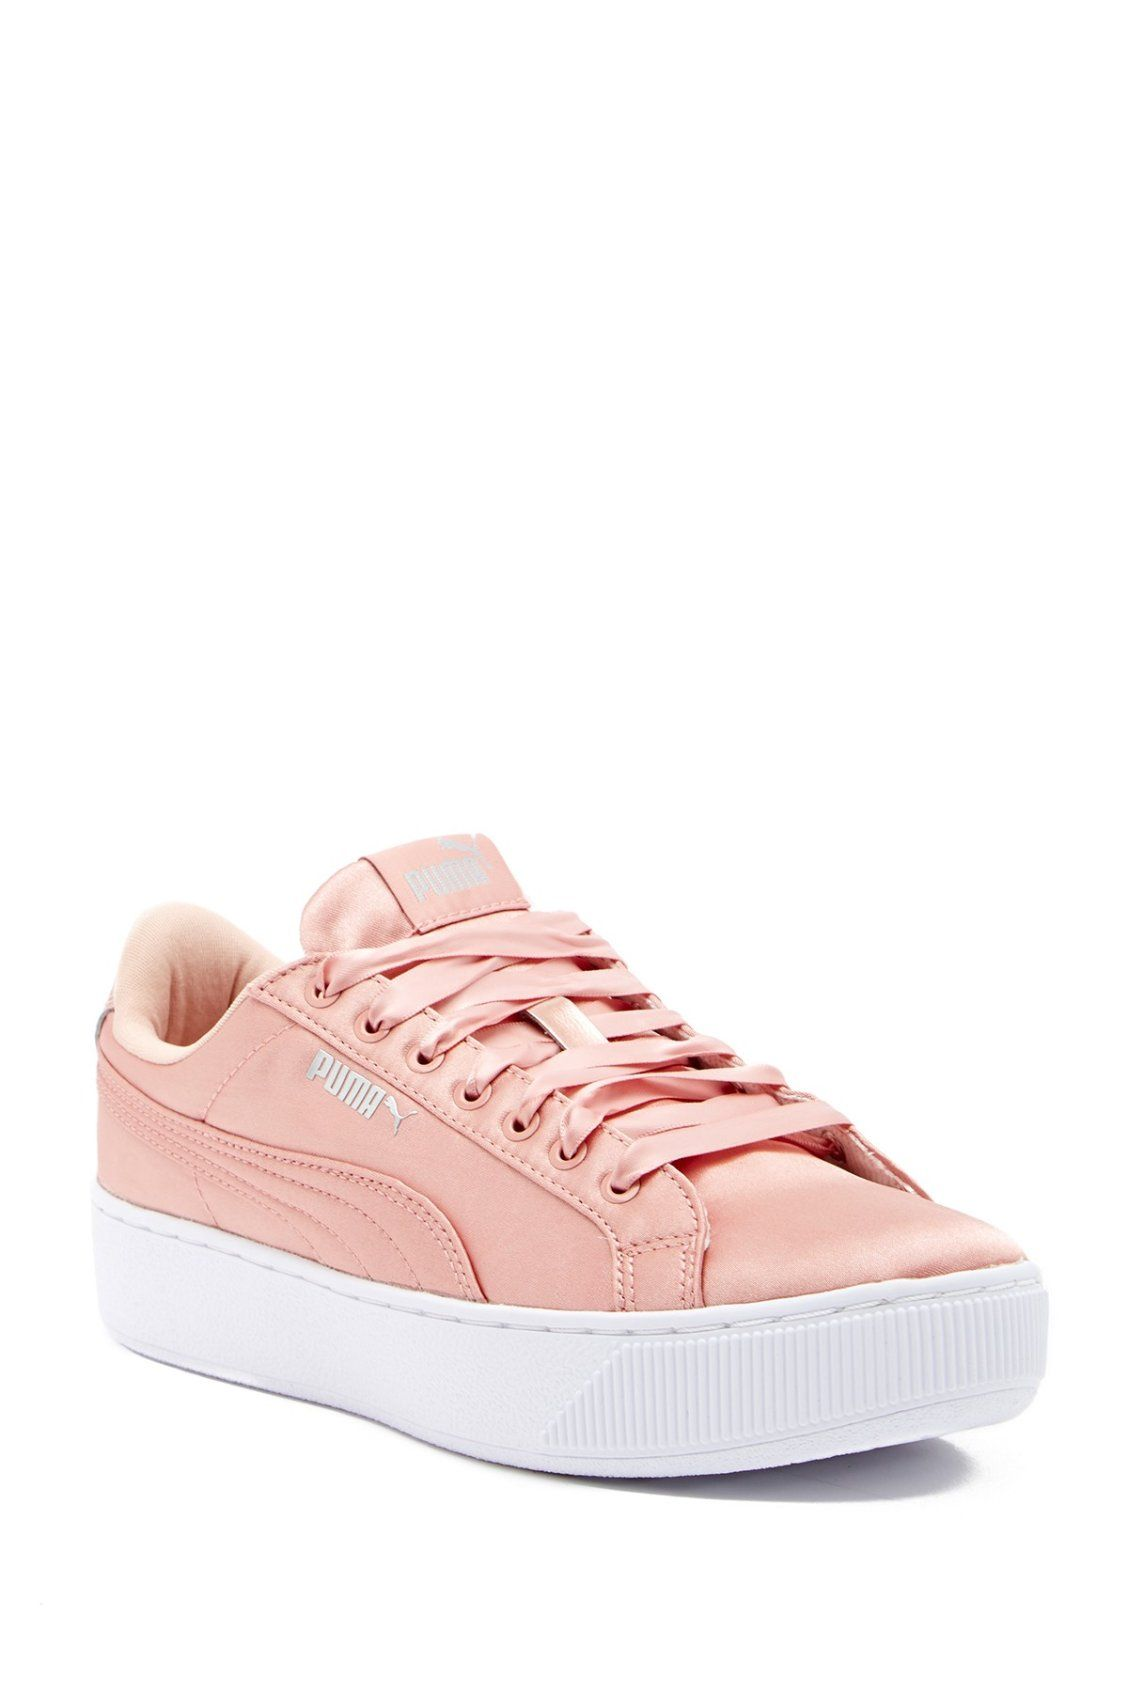 ae94d2620883 Pink Silk PUMA Vikky Platform EP Sneakers